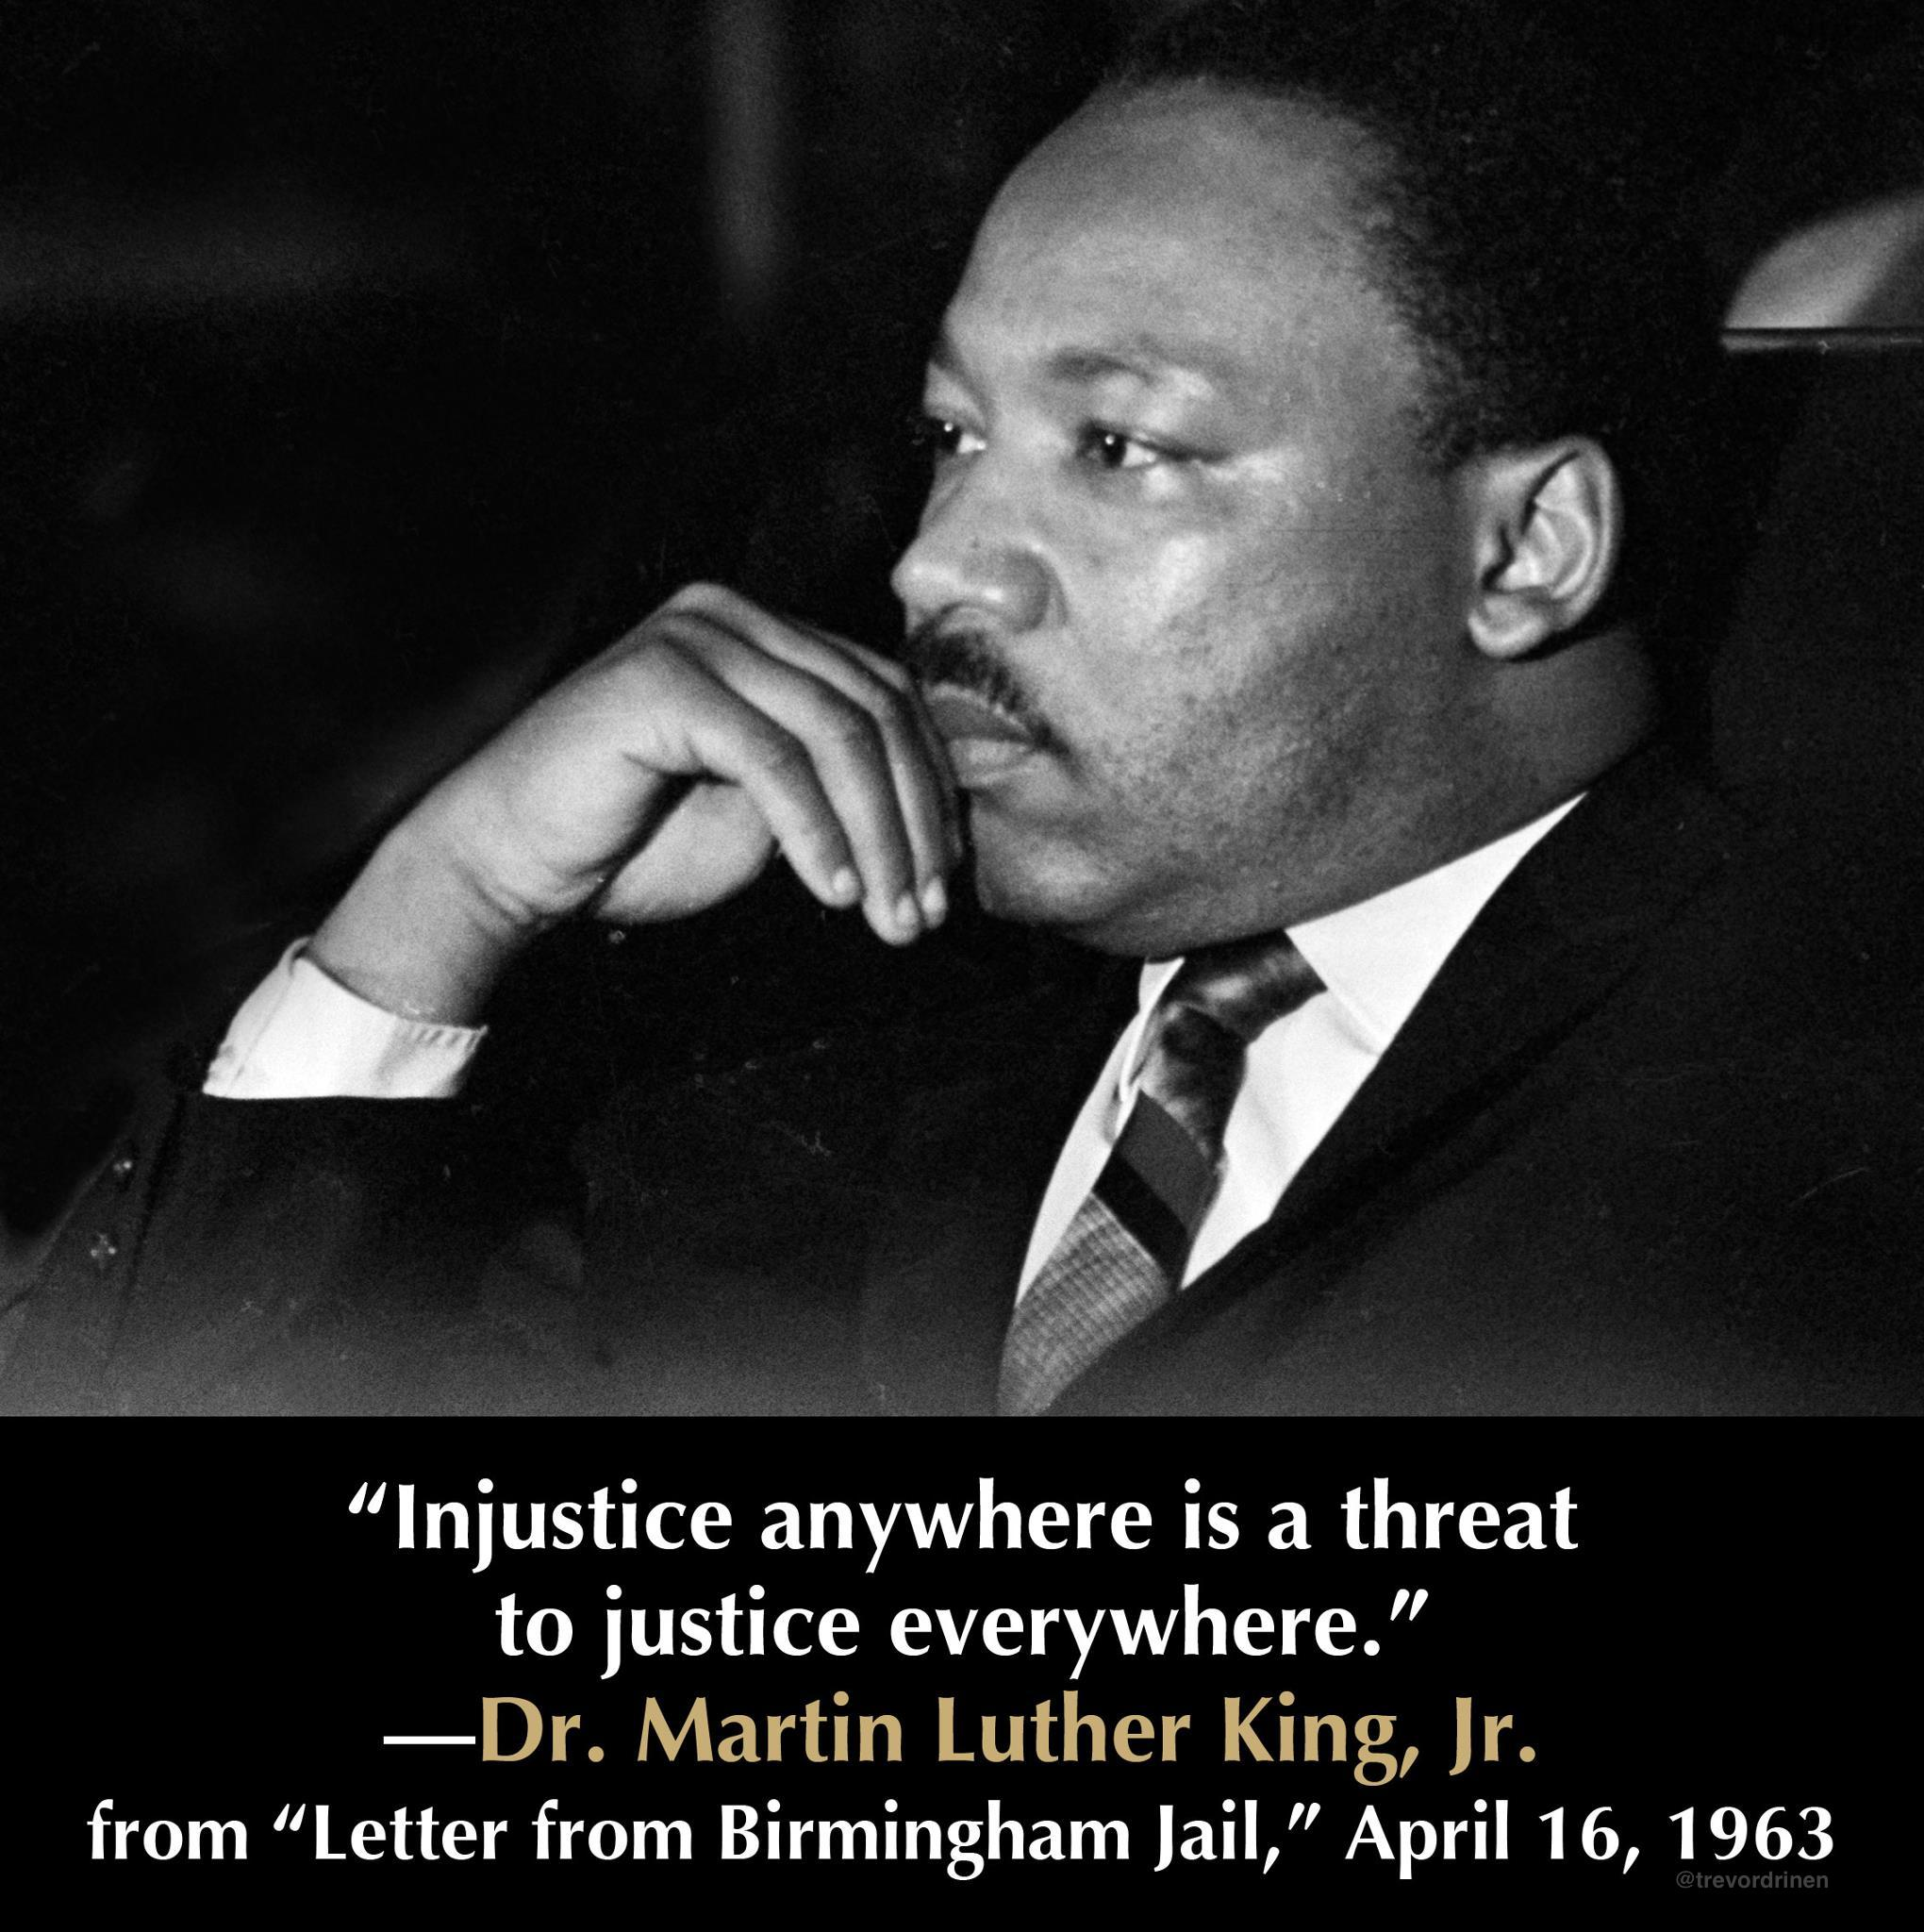 letter from birmingham jail martin luther king jr wallpapers wallpaper cave 22842